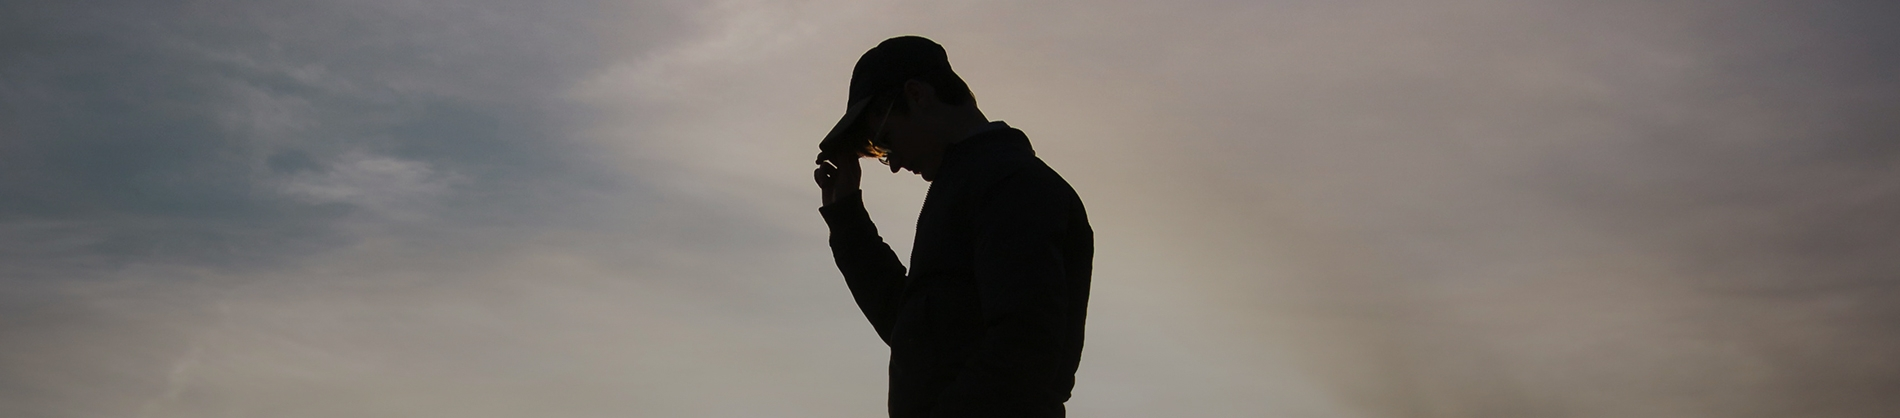 A silhouette of a man wearing a cap